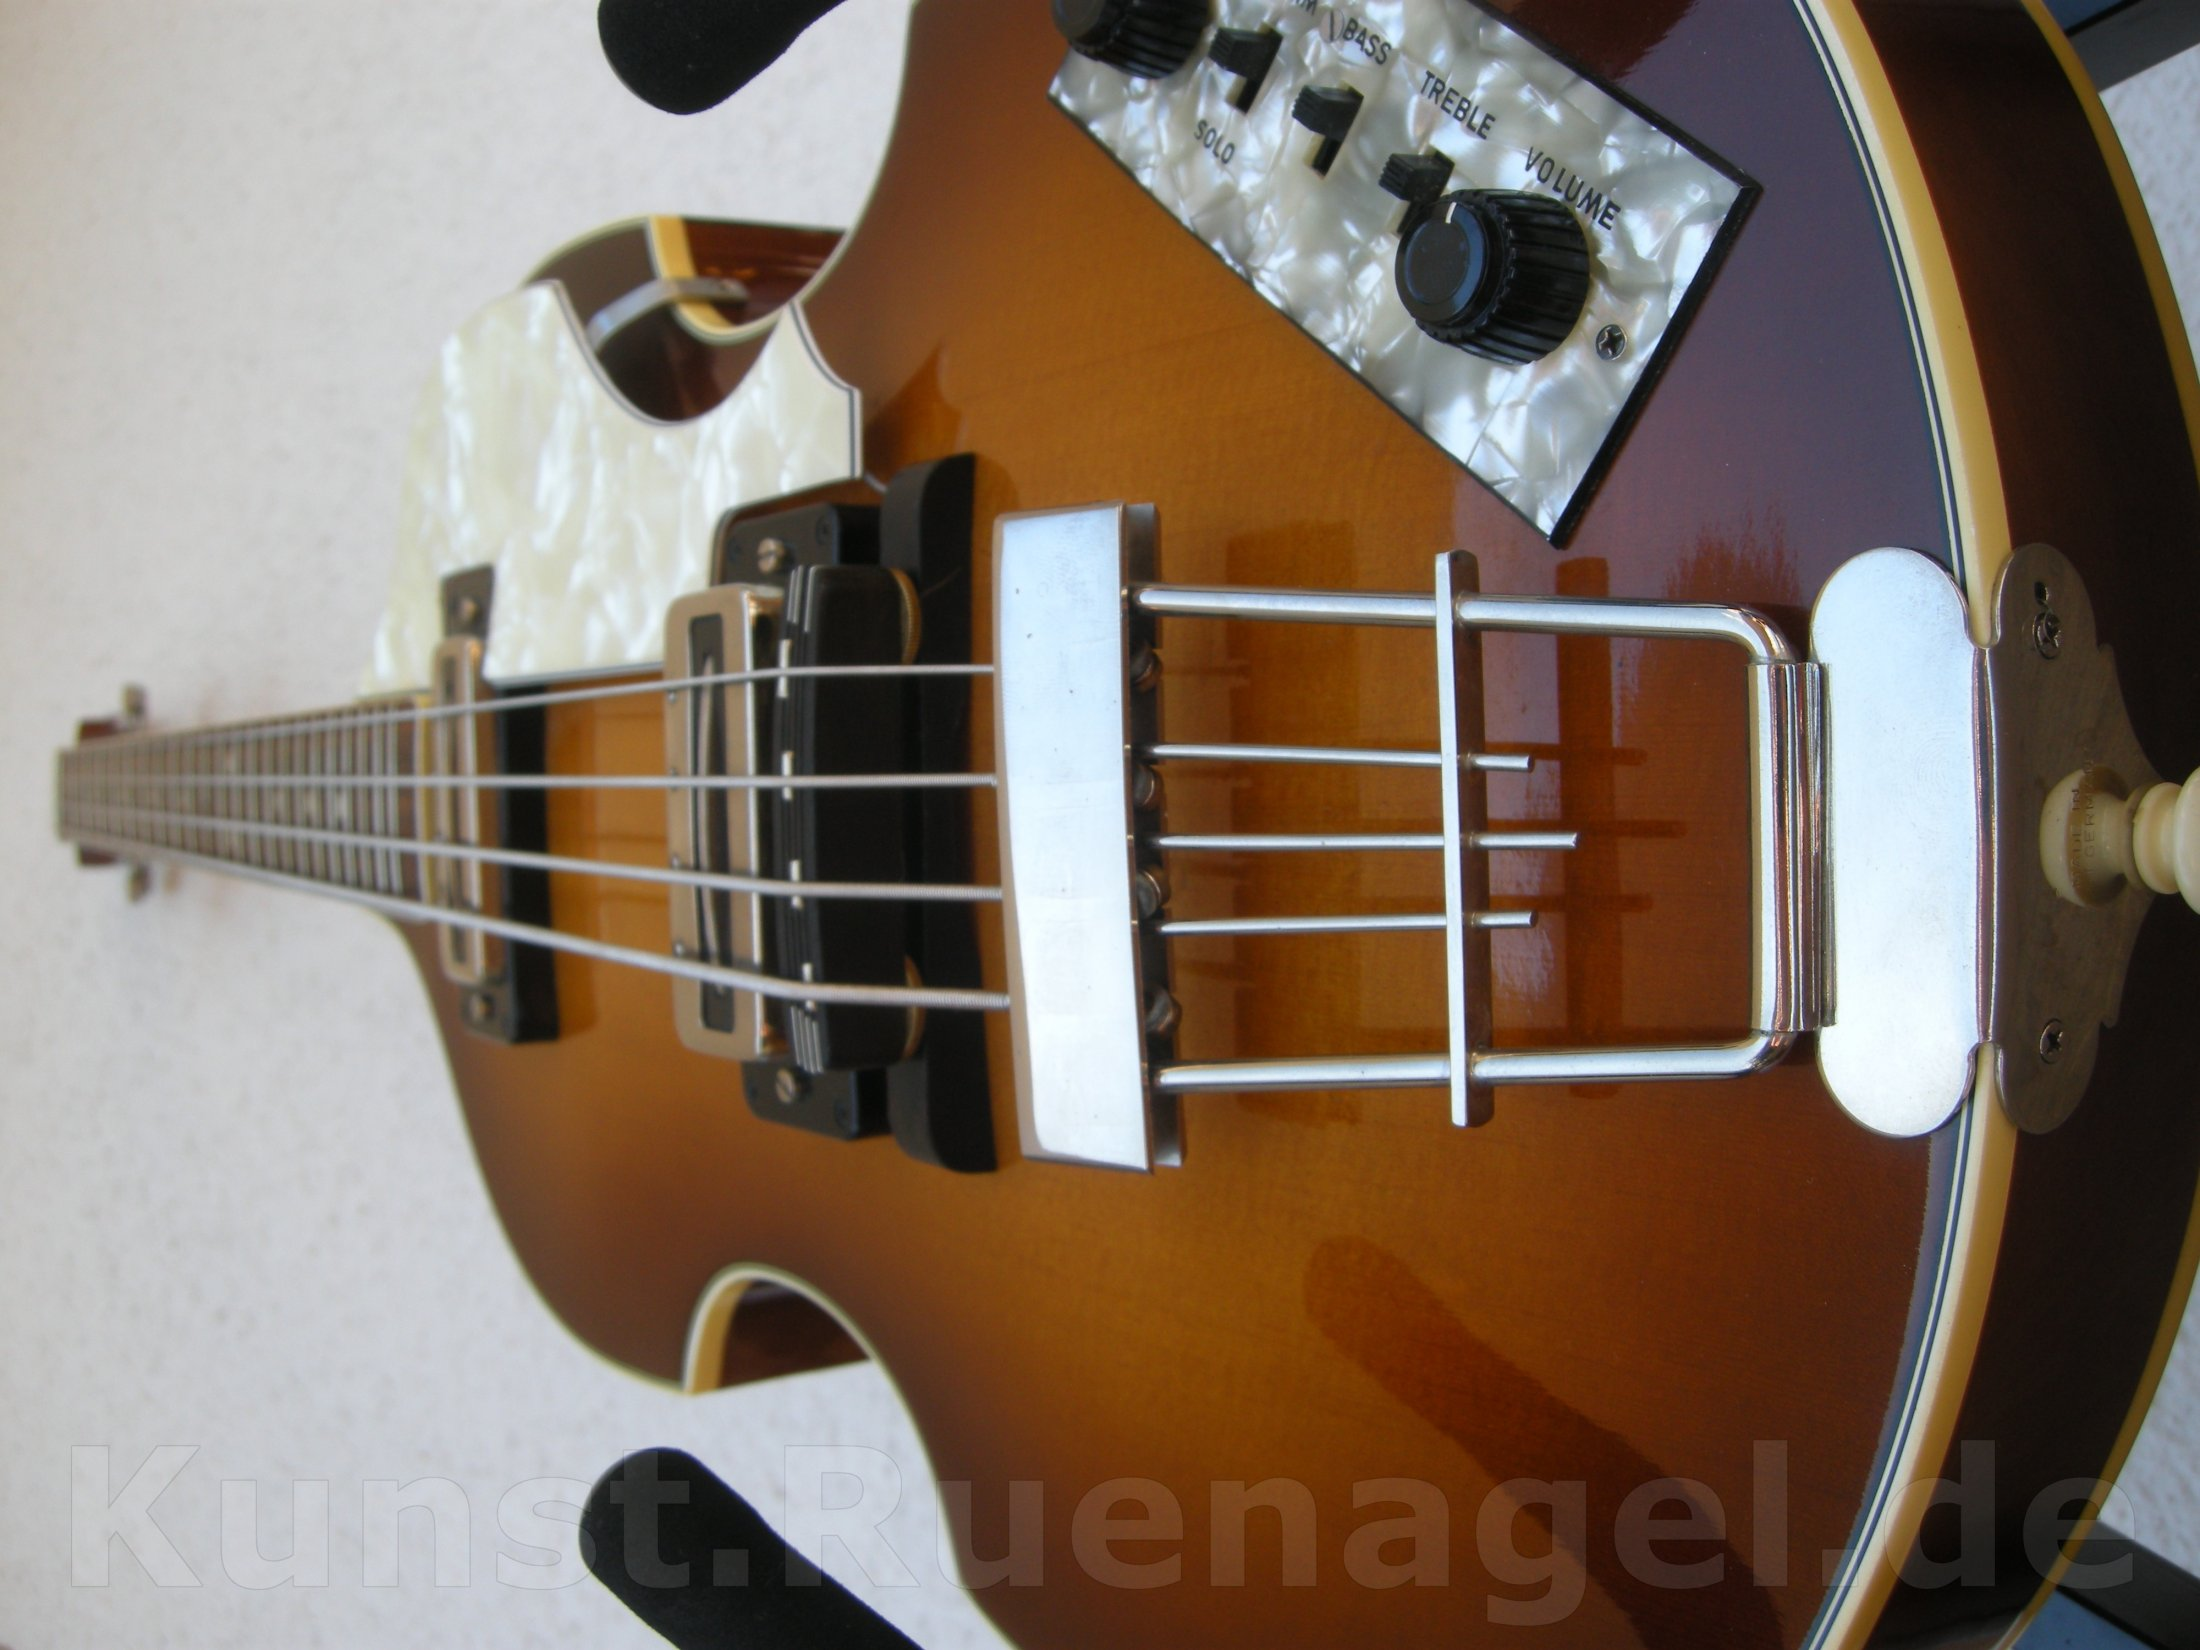 Beatles Bass Guitar Hoefner 500-1 Musik Intrumente Rosenheim - Kunst-Ruenagel-de101